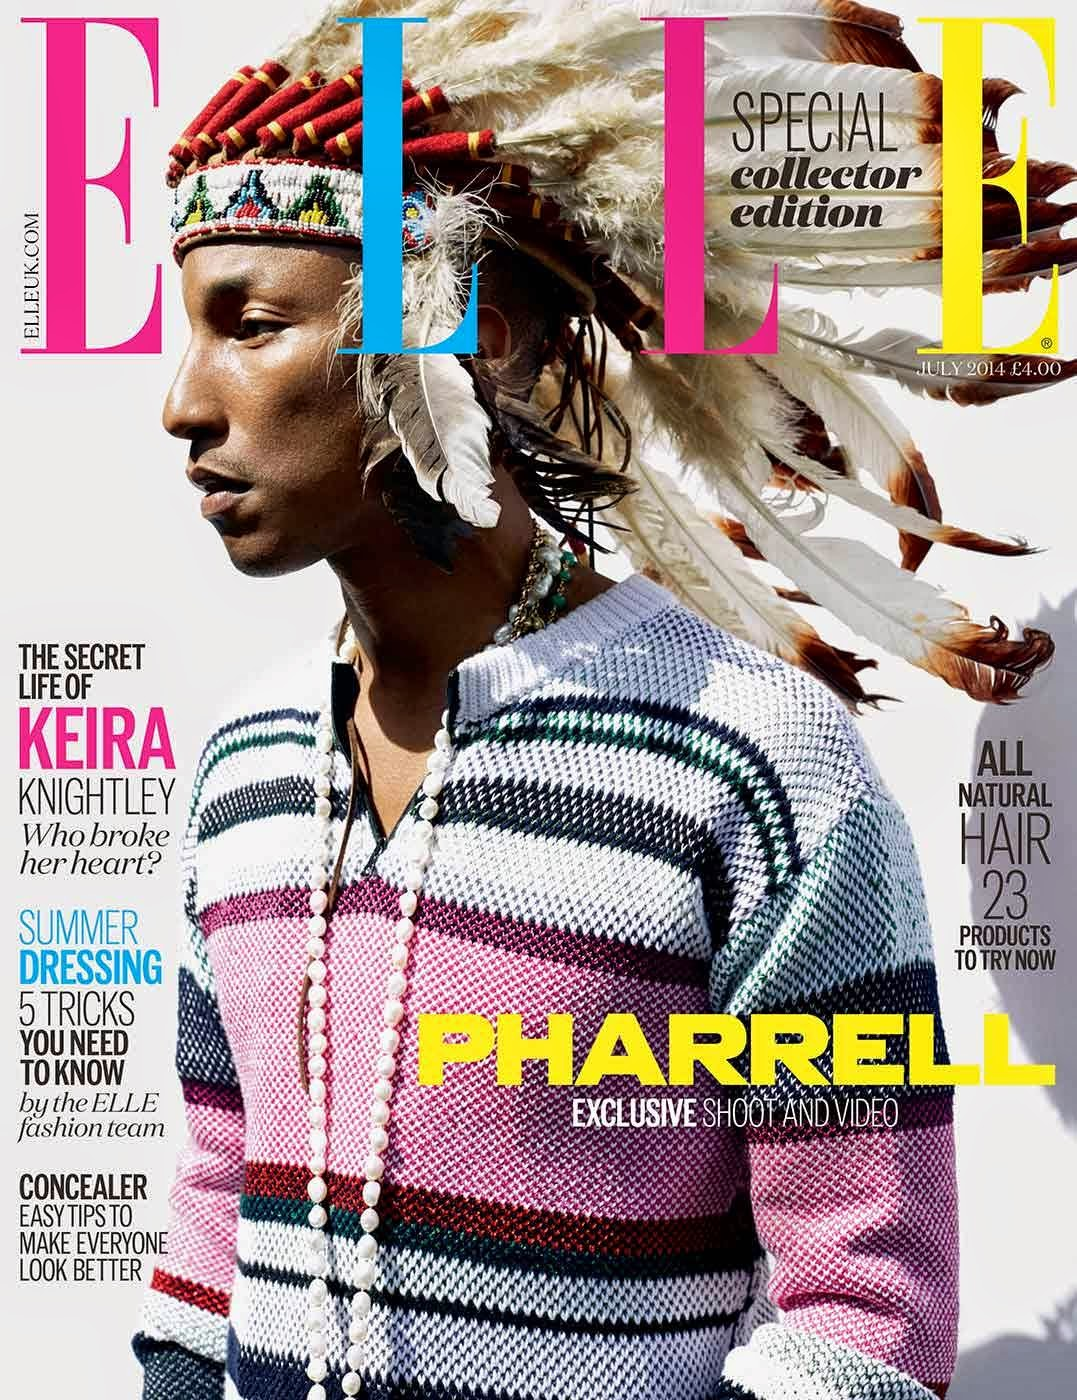 a recent history of celeb cultural appropriation vulture